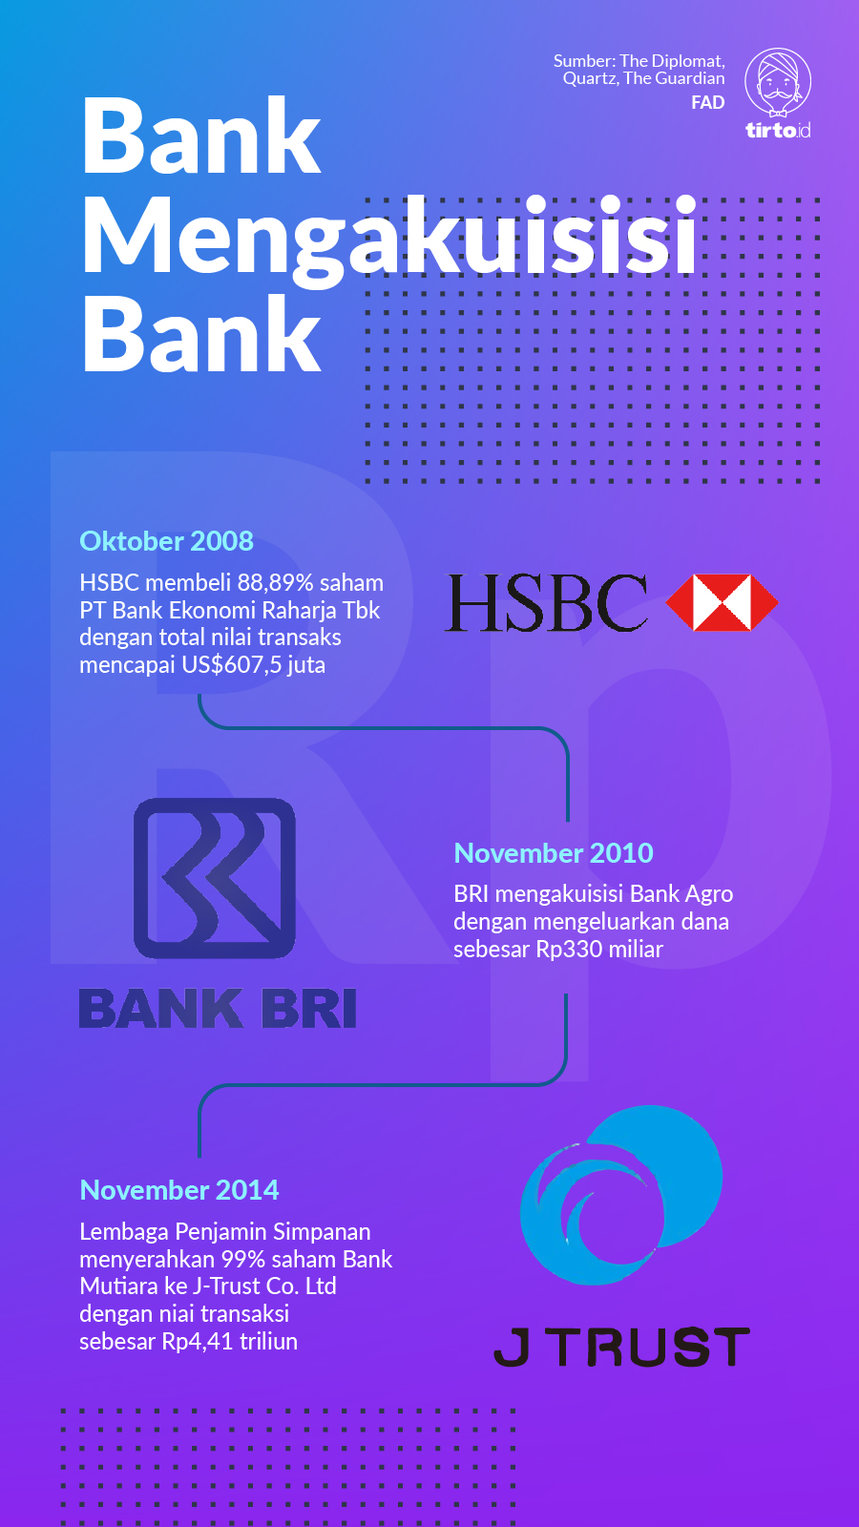 Infografik Bank mengakuisisi Bank